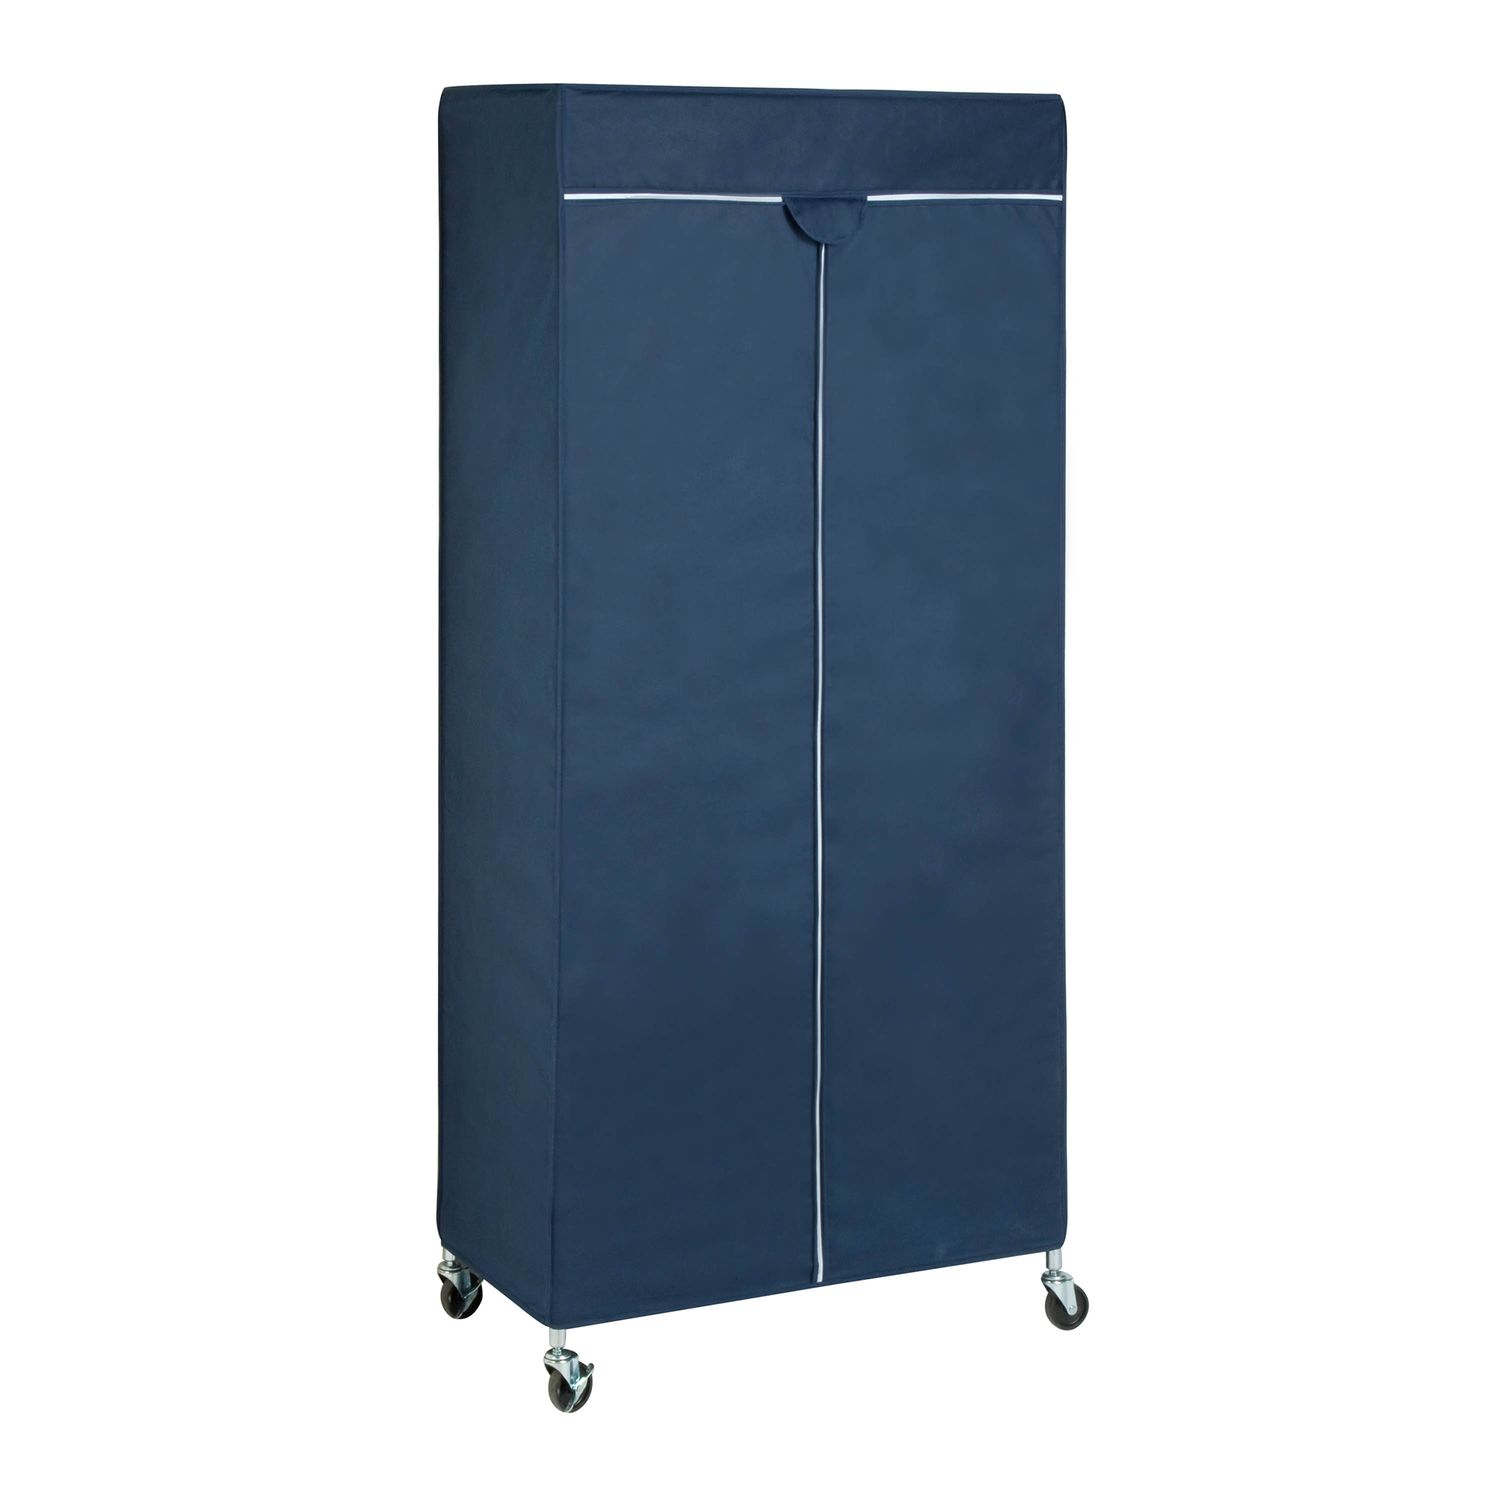 garment racks wardrobes storage organization storage